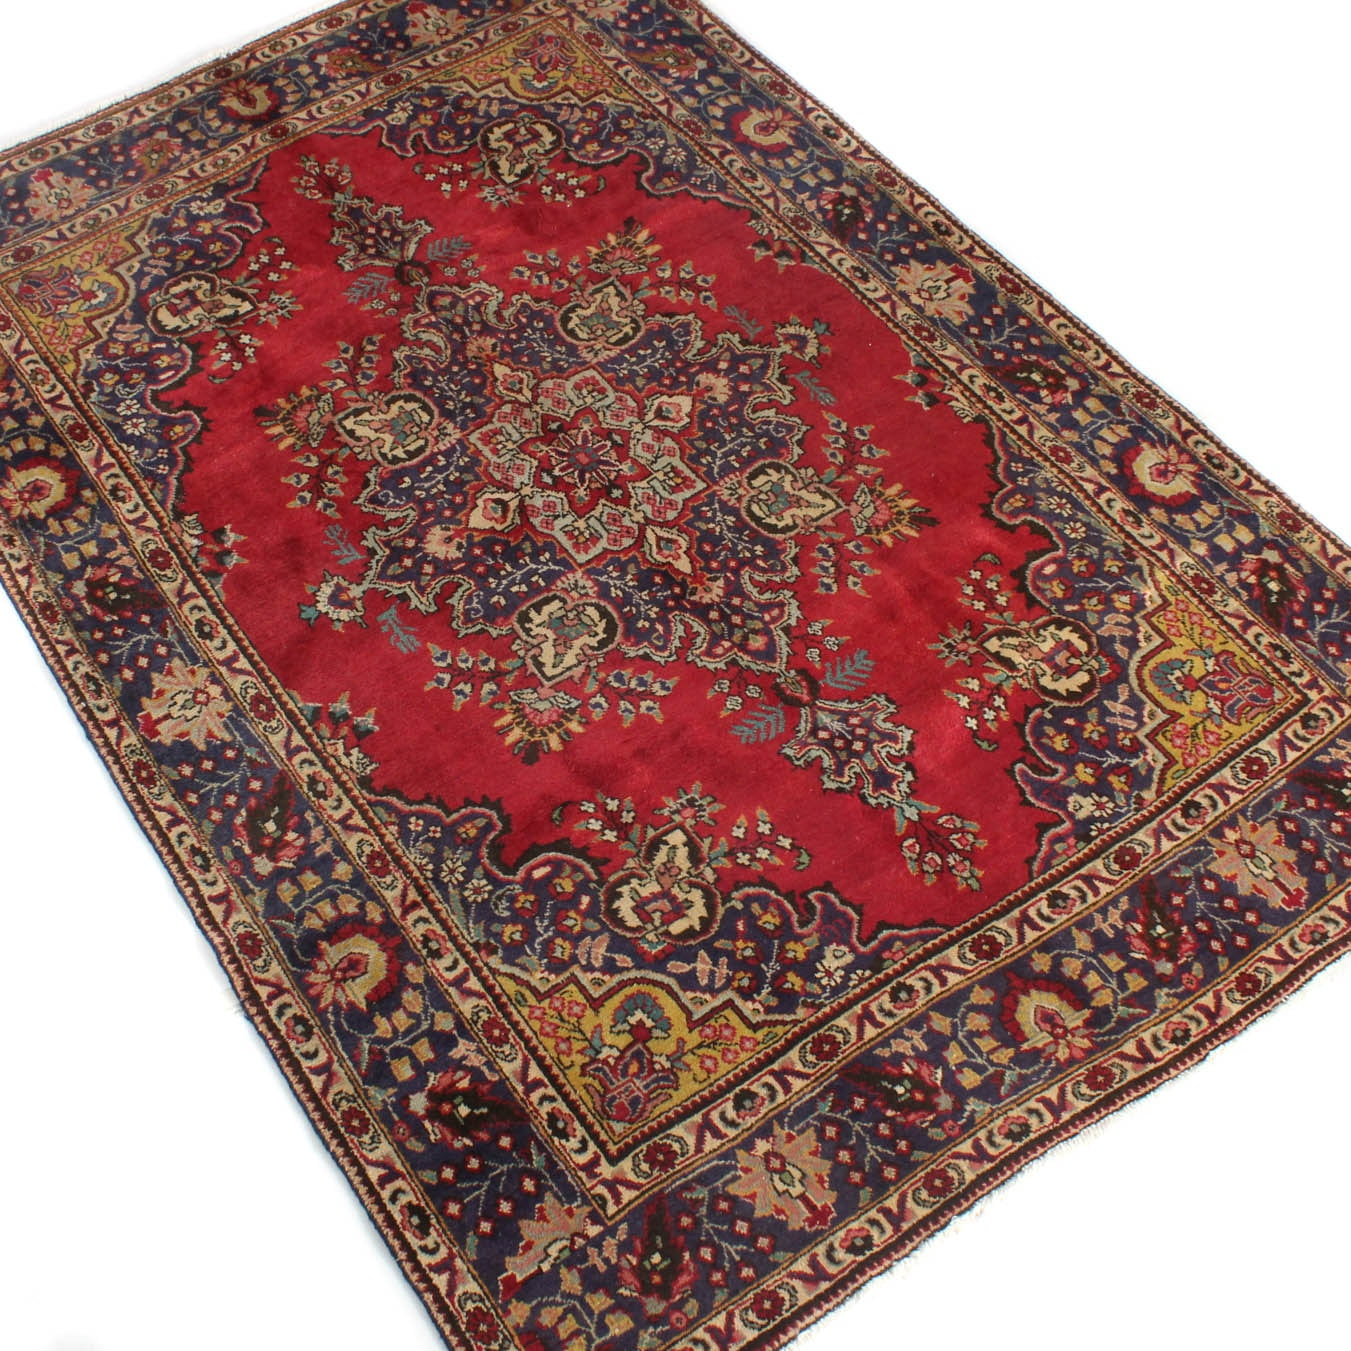 7' x 10' Fine Hand-Knotted Persian Tabriz Rug